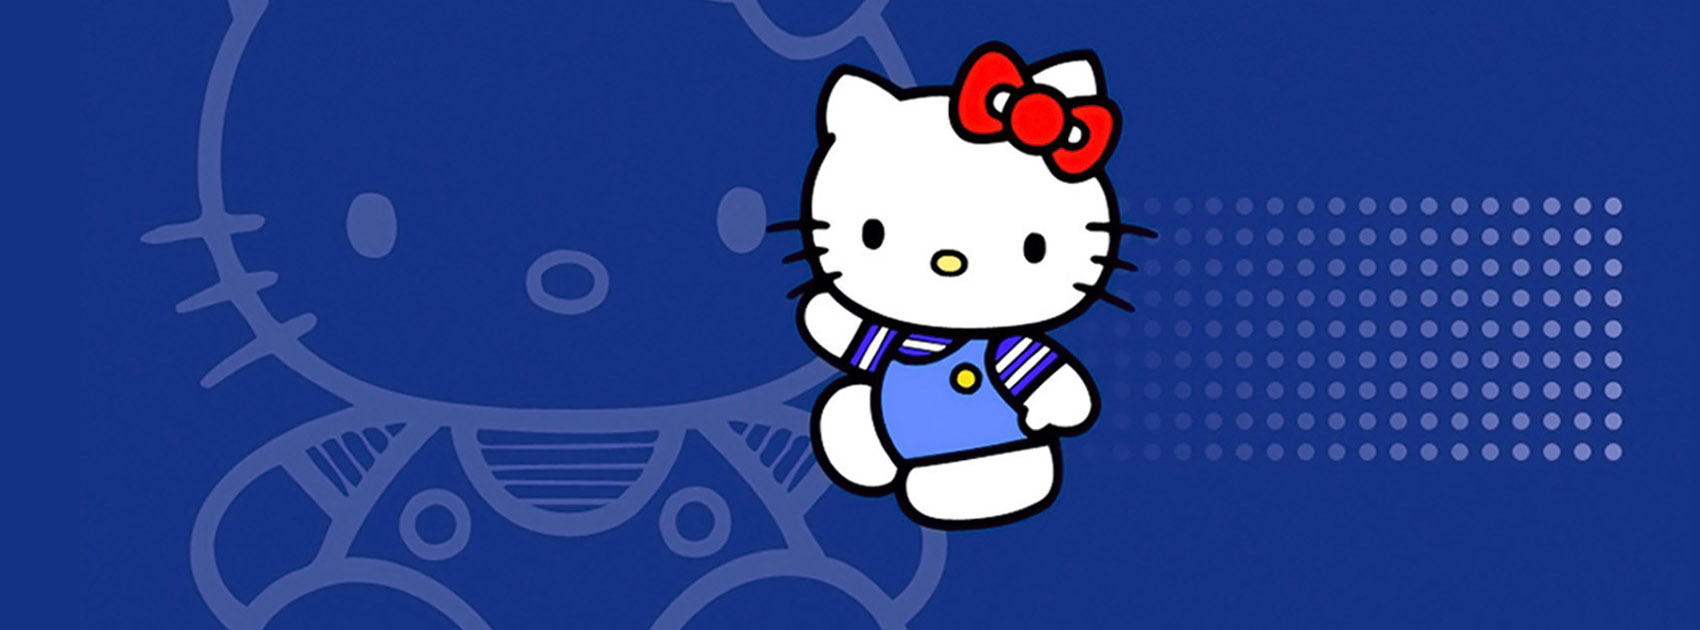 hello kitty backgrounds for facebook timeline images